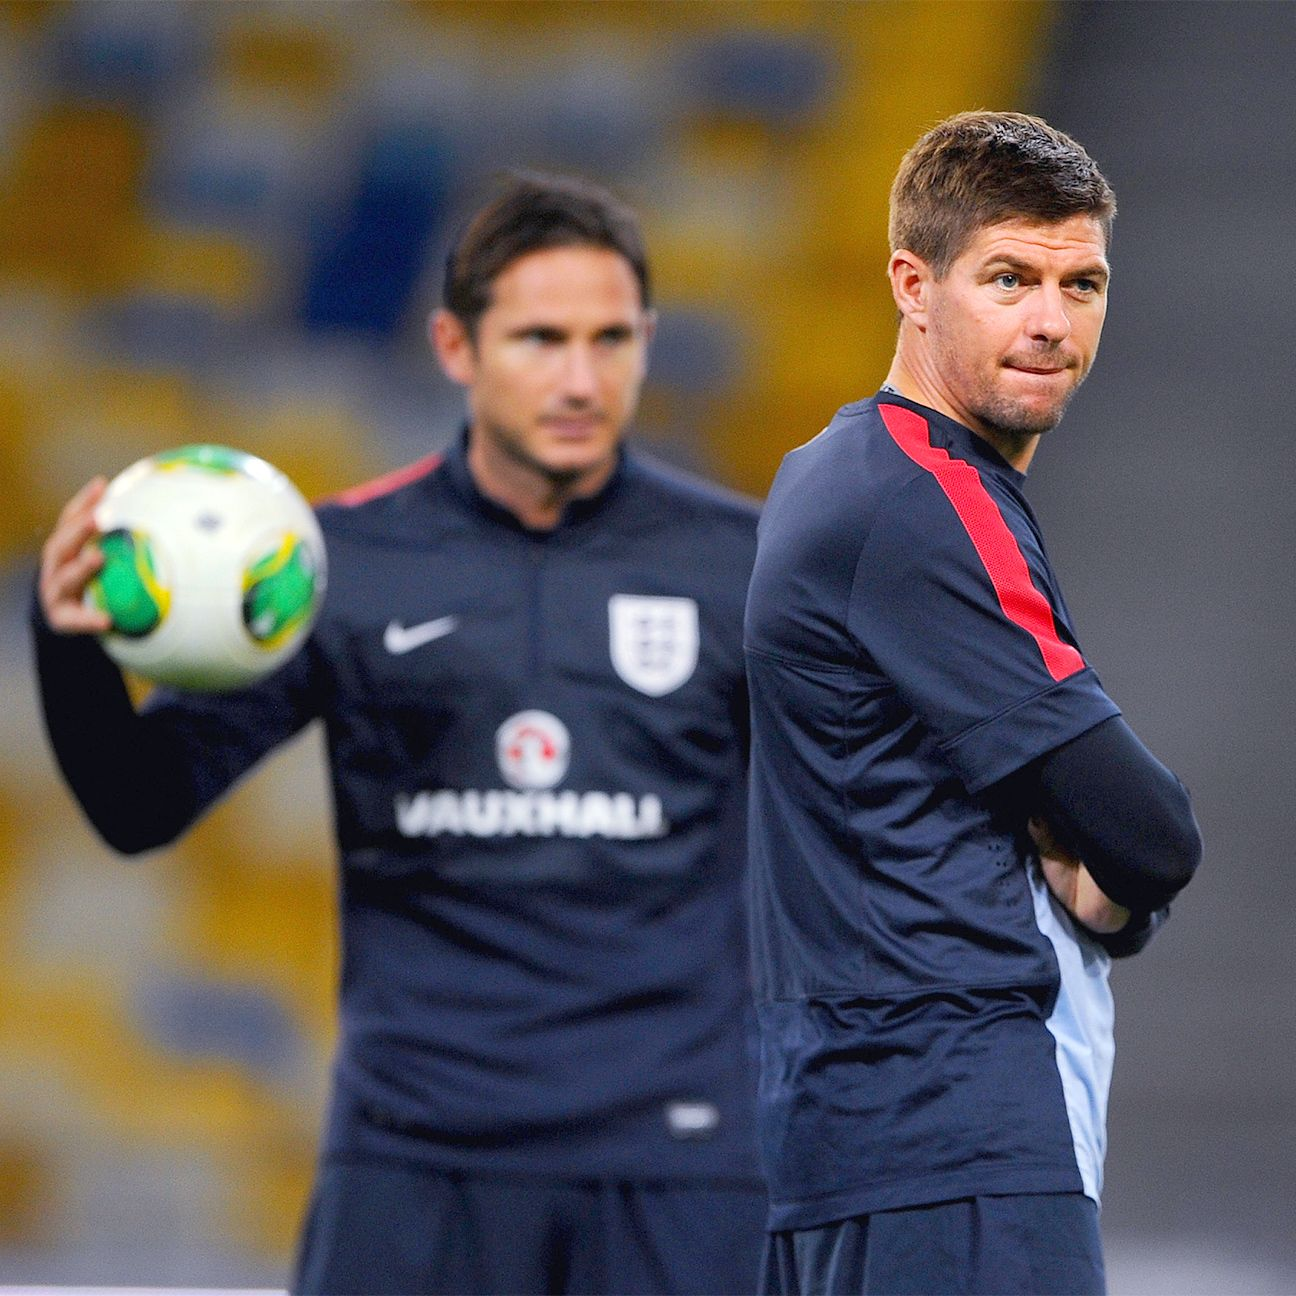 Steven Gerrard and Frank Lampard were two of the finest midfielders of their generation.